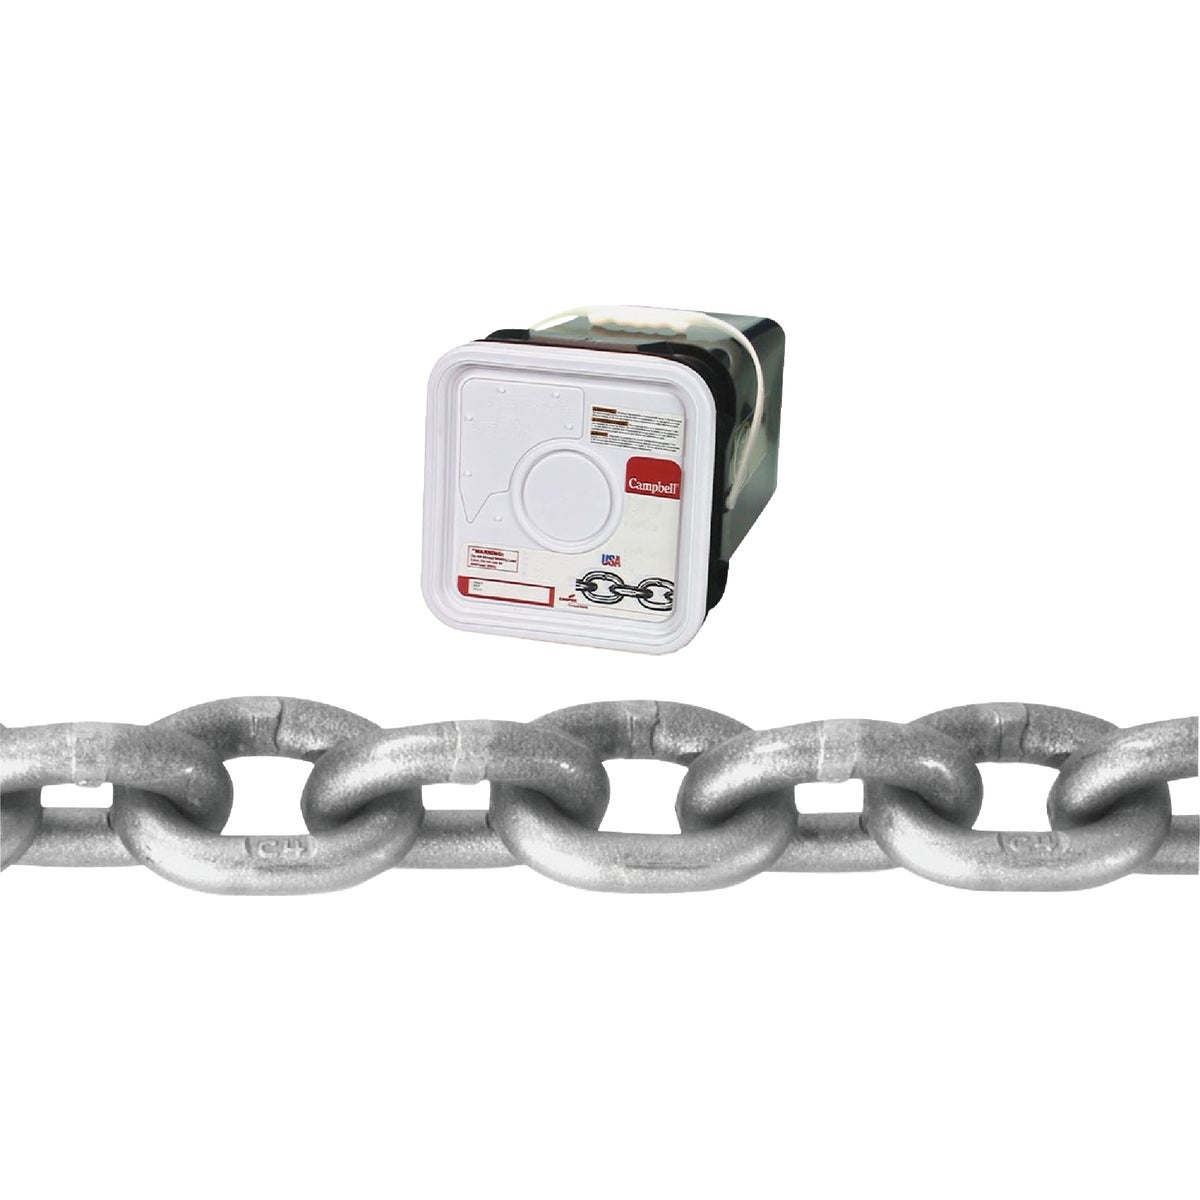 "100' 1/4"" G43 CHAIN - 0184416 by Cooper Campbell Apex"